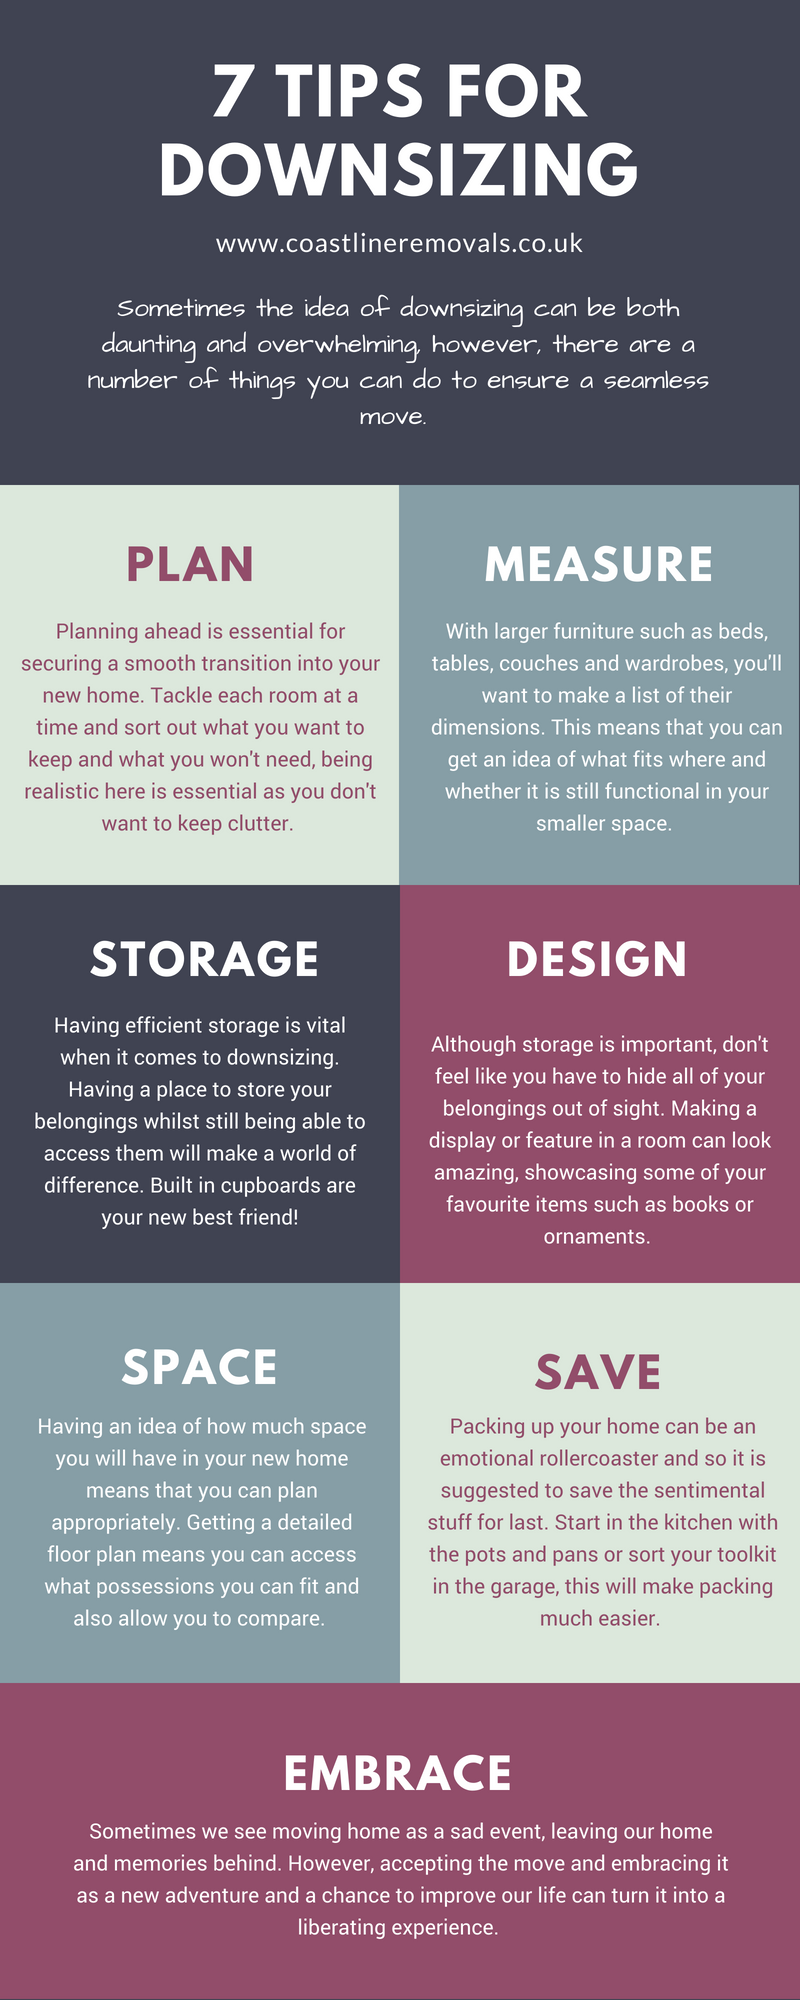 Tips for Downsizing Infographic